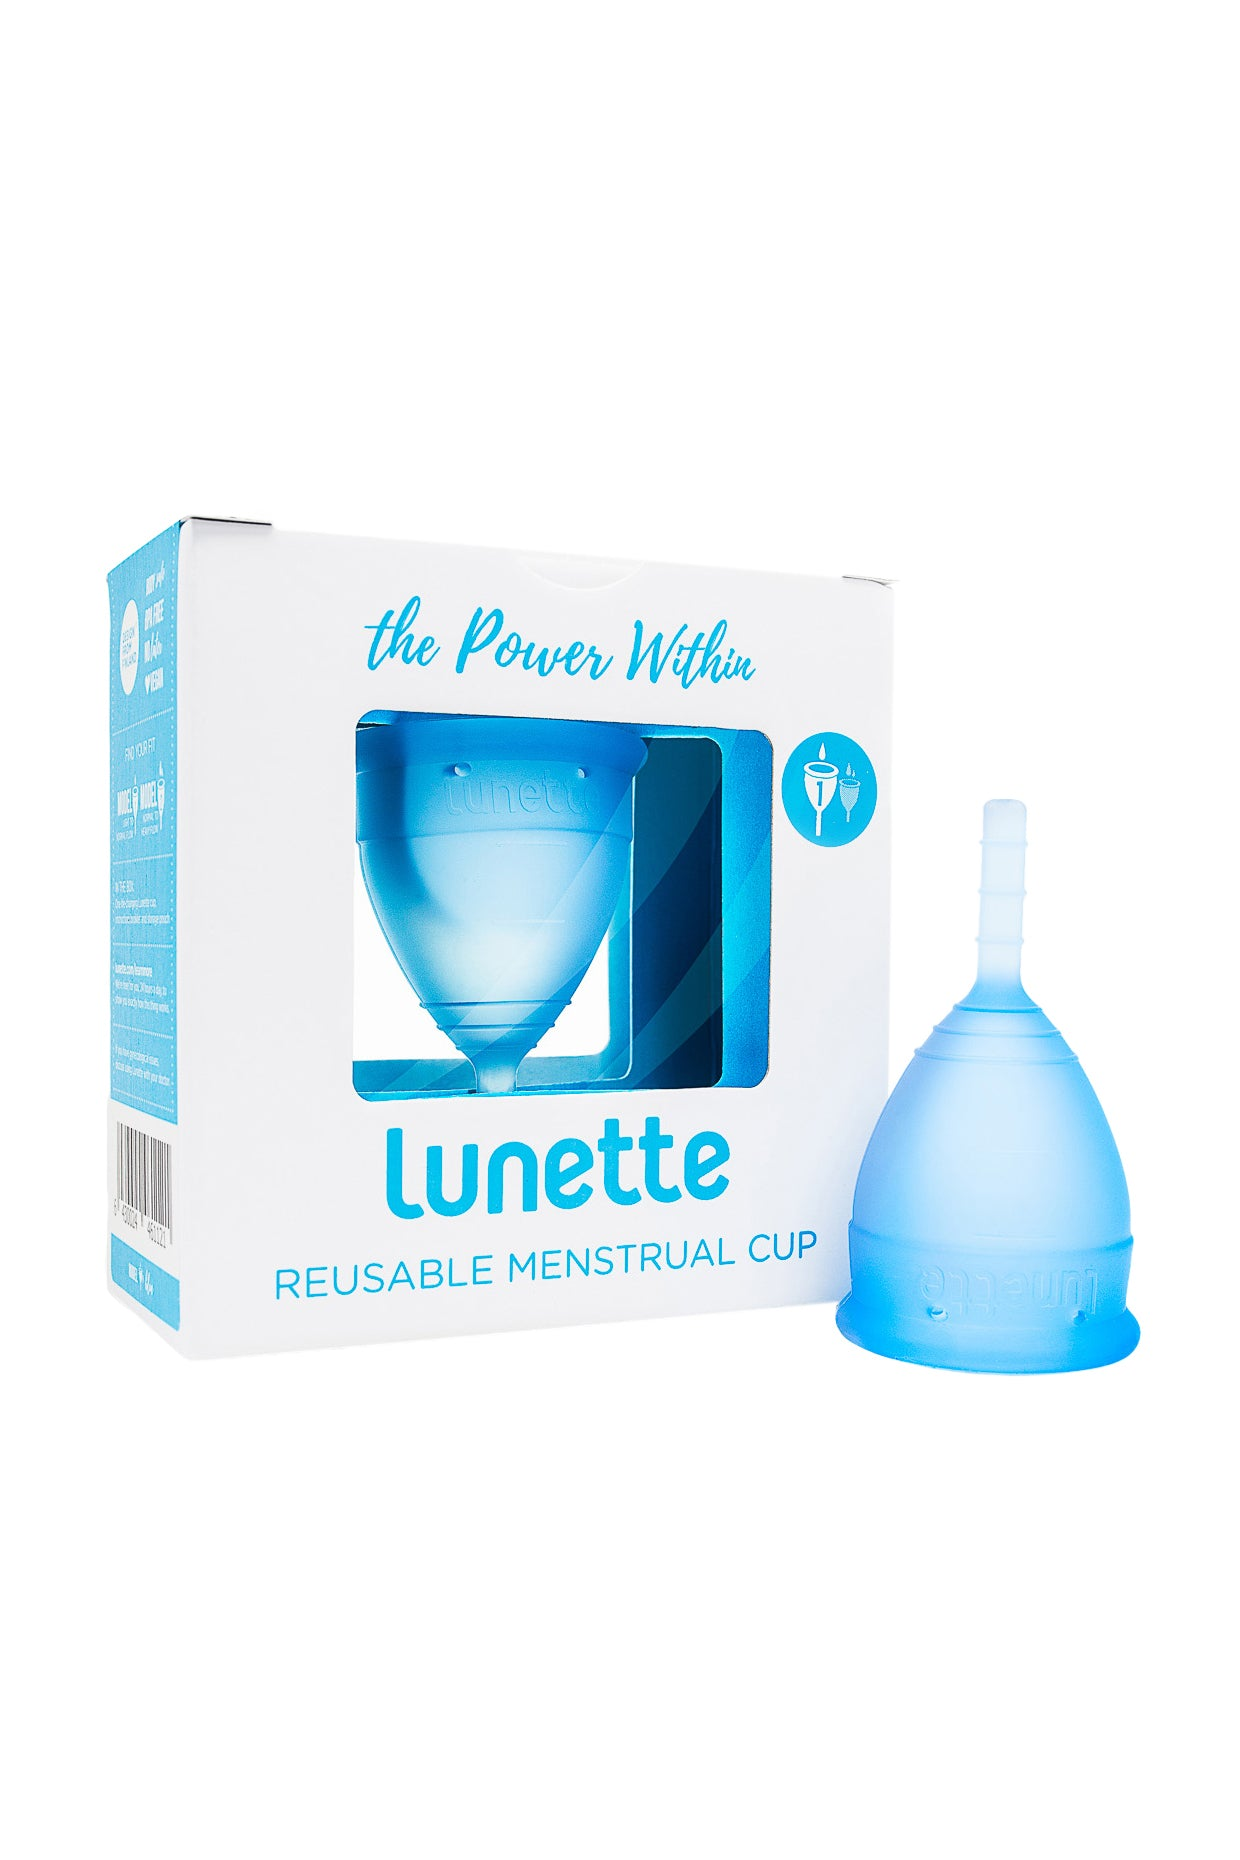 Reusable Menstrual Cup